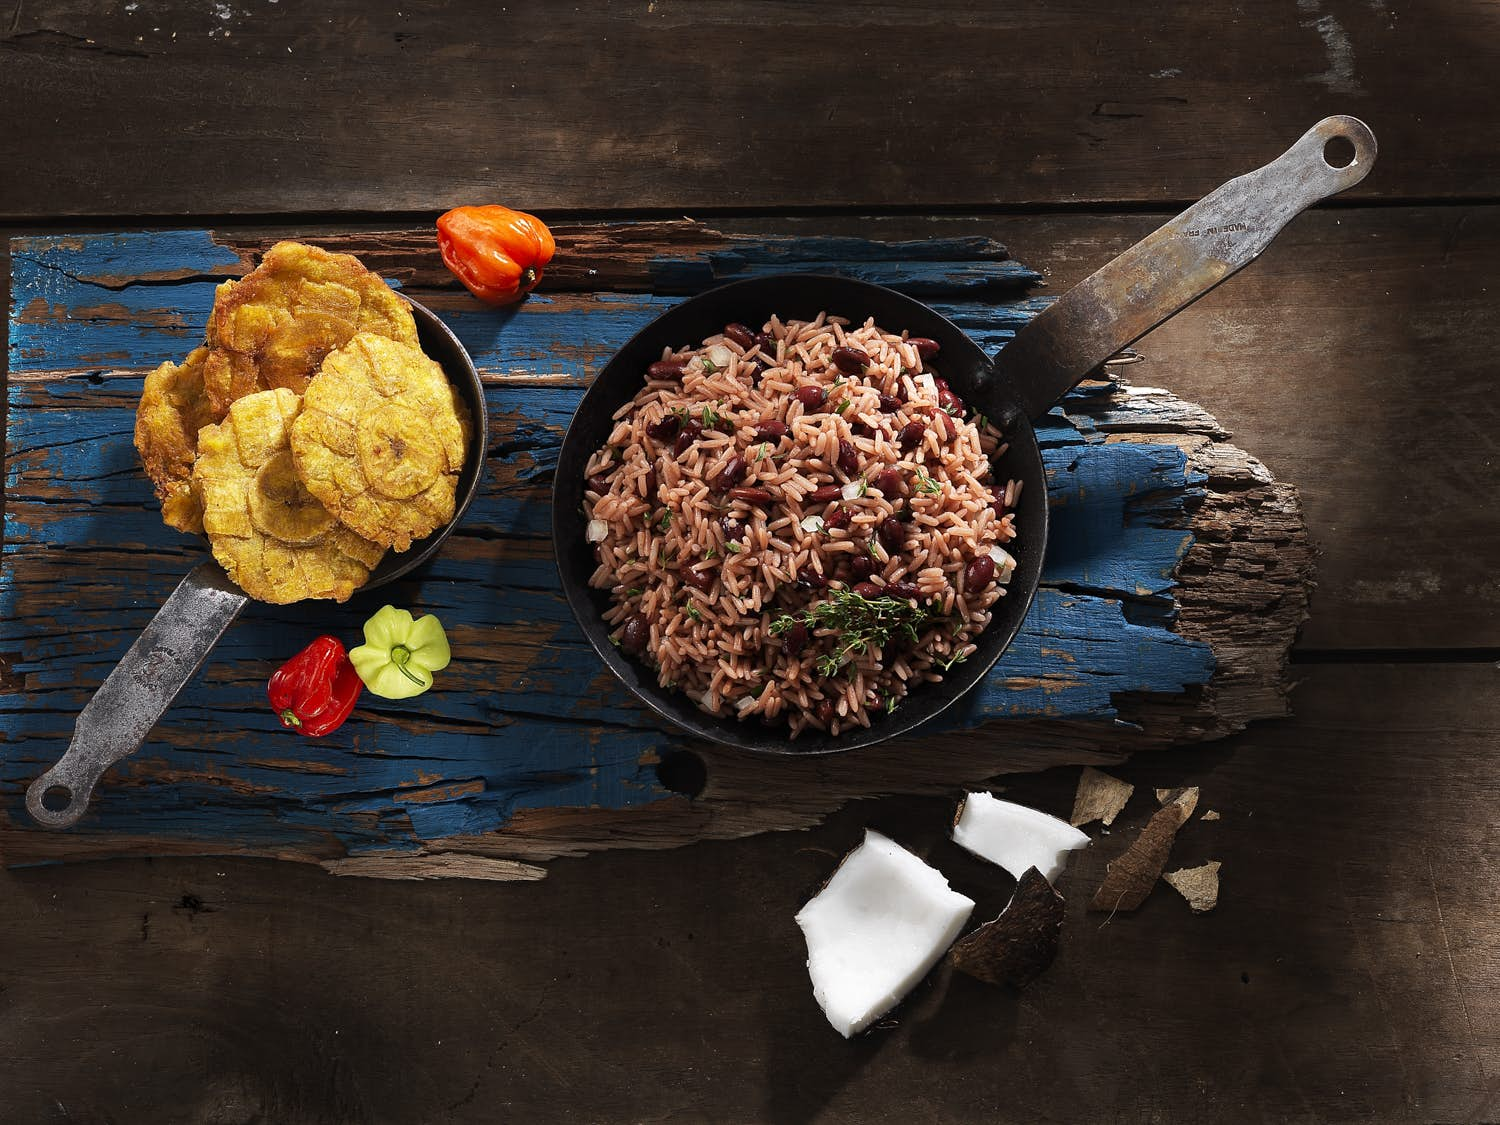 Costa Rica Typical Food: Gallo Pinto.